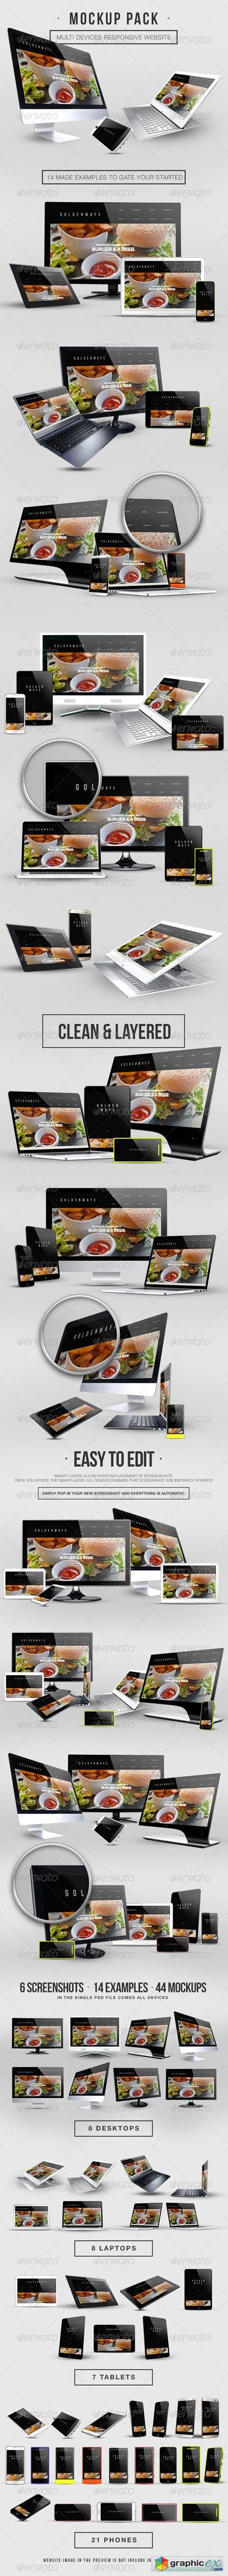 Multi Devices Responsive Website Mockup Pack 8516036